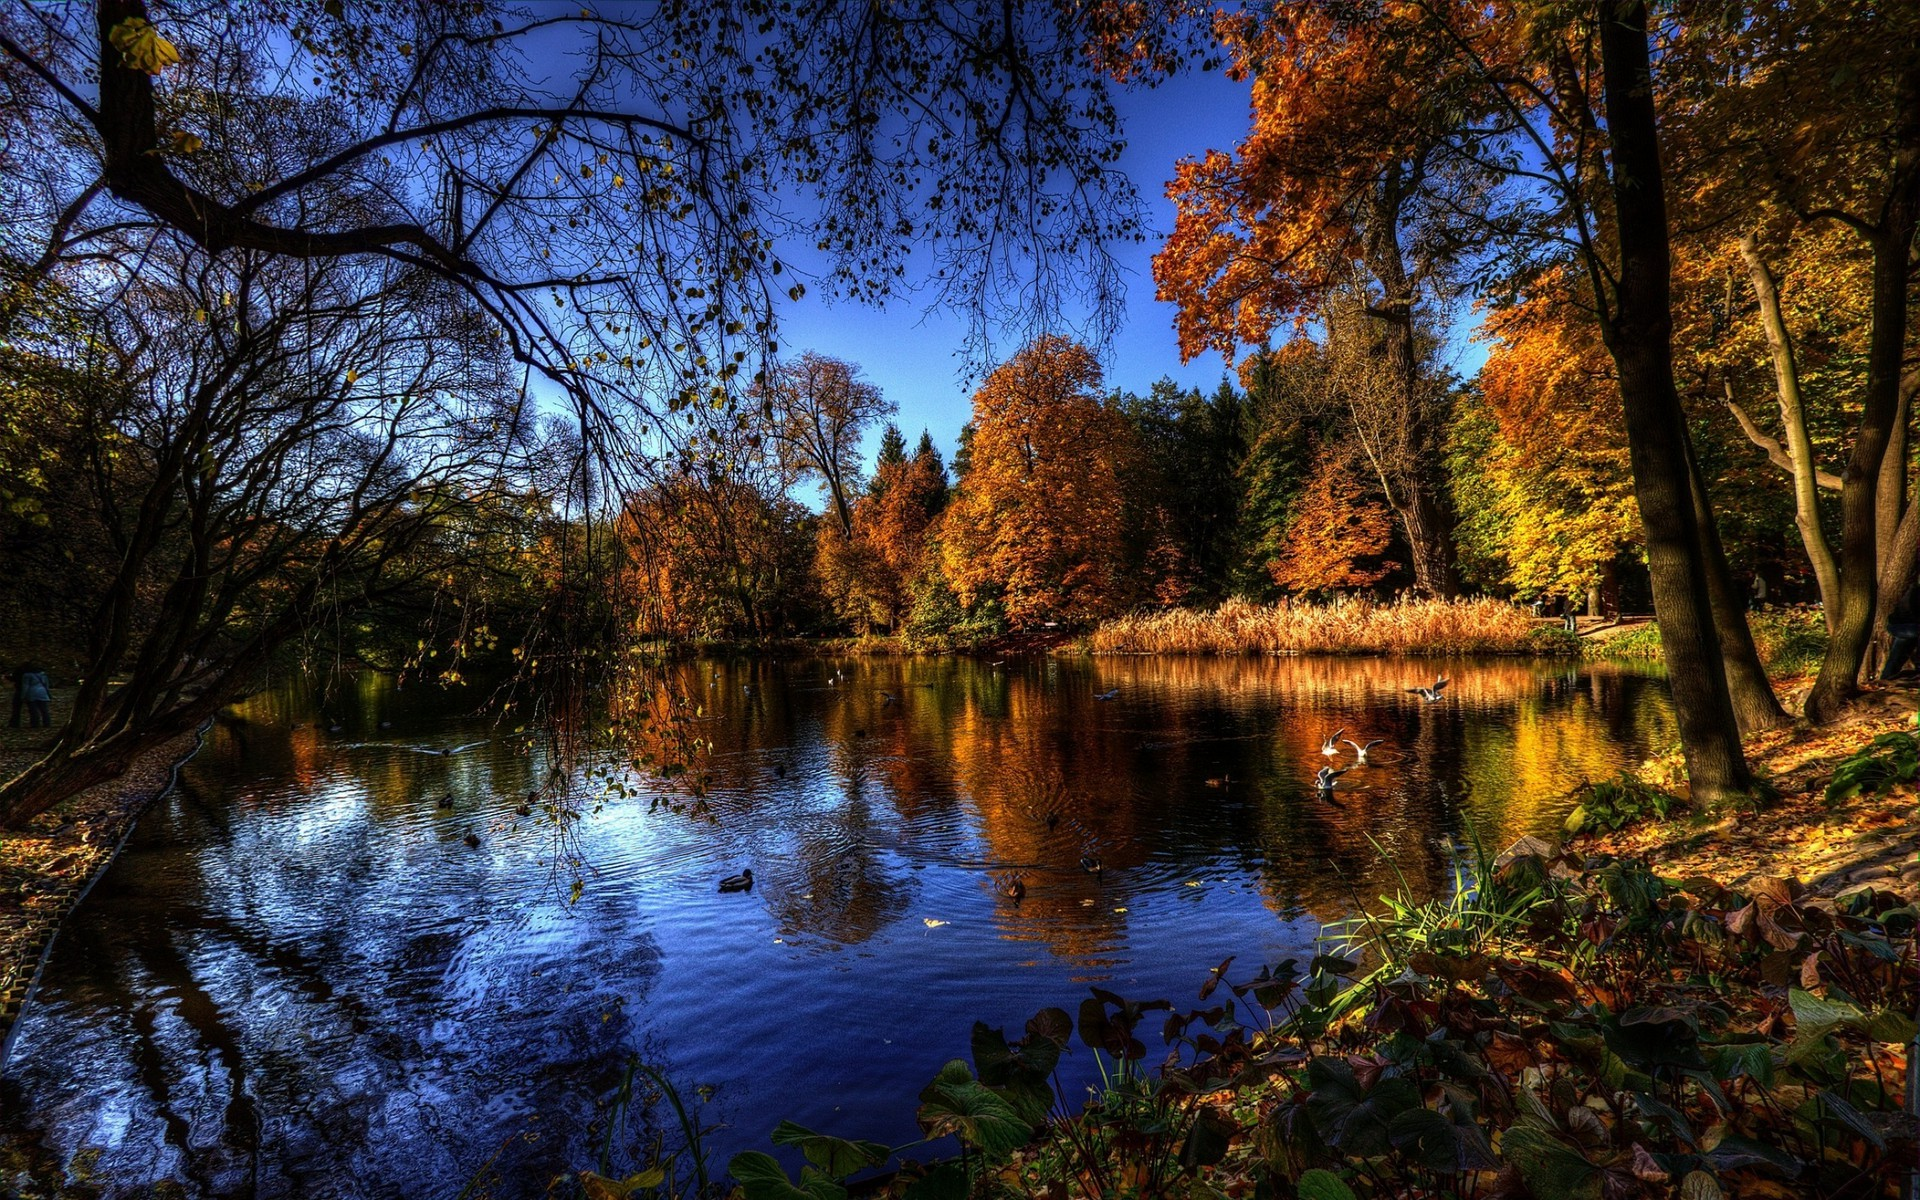 Bing Wallpaper Fall Lake Forest Nature Wallpapers Hd Desktop And Mobile